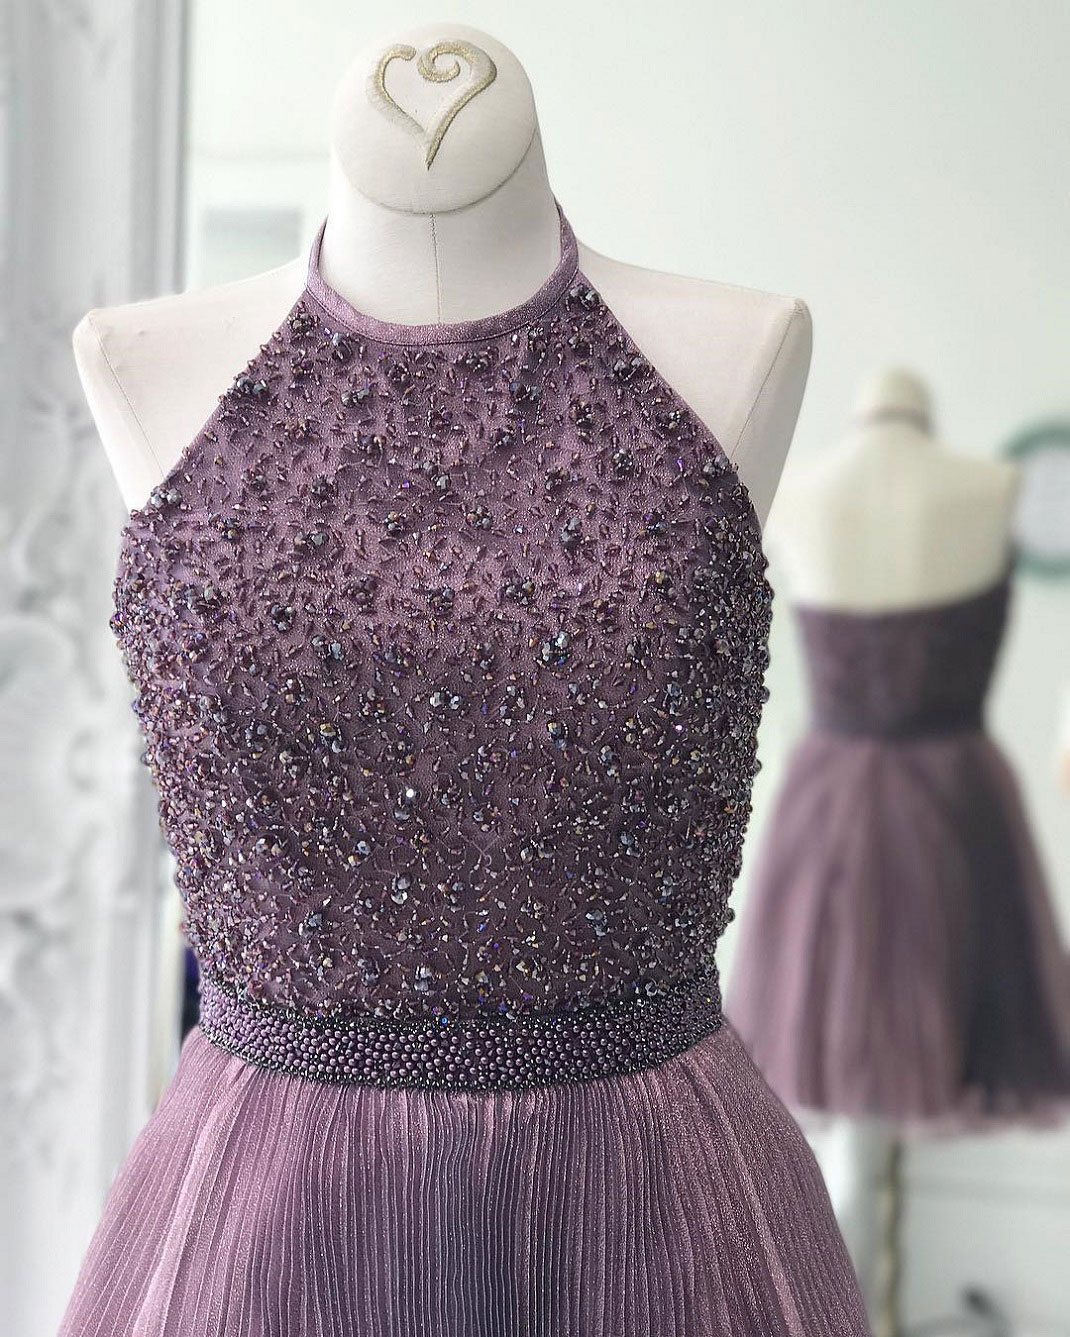 d36215c2 Sparkly Beaded Homecoming Dresses,Halter Homecoming Dresses,Wisteria ...